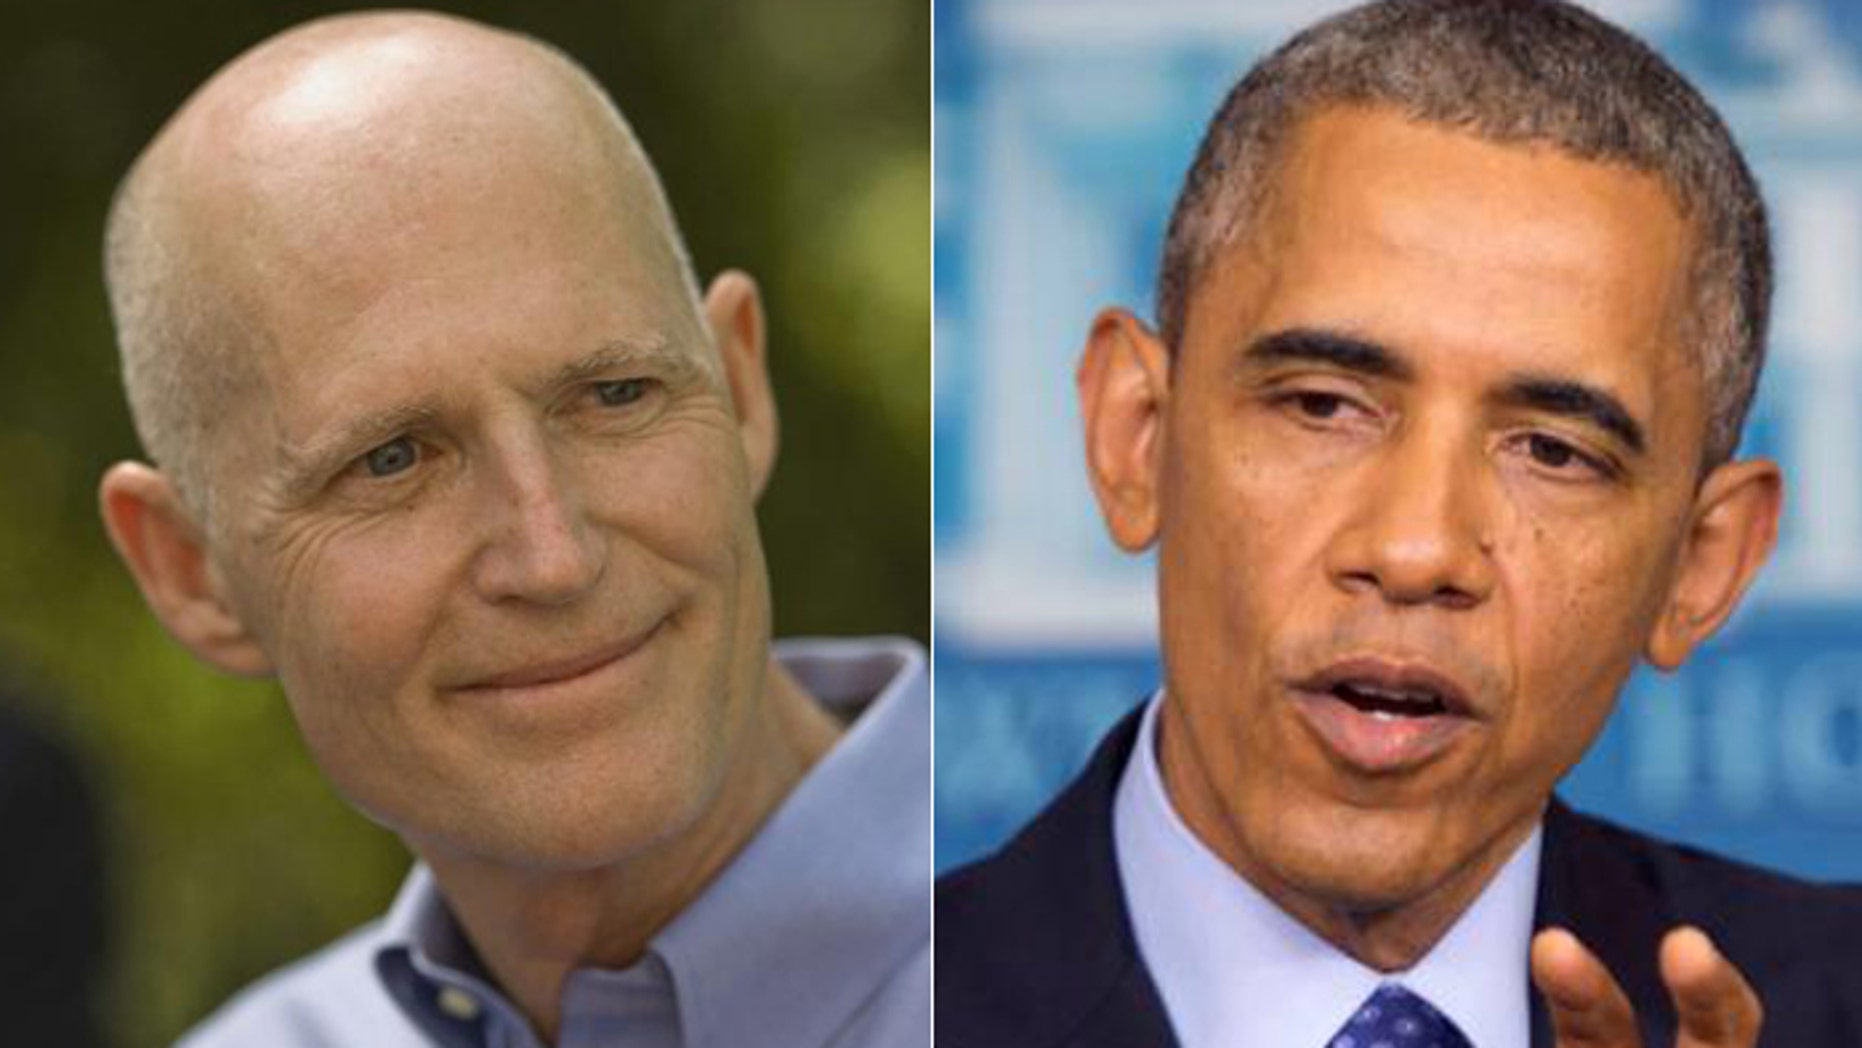 Florida Gov. Rick Scott, (l.), and President Obama have clashed over environmental policy, but won't be anywhere near each other on Wednesday, when the president gives an Earth Day address. (AP)